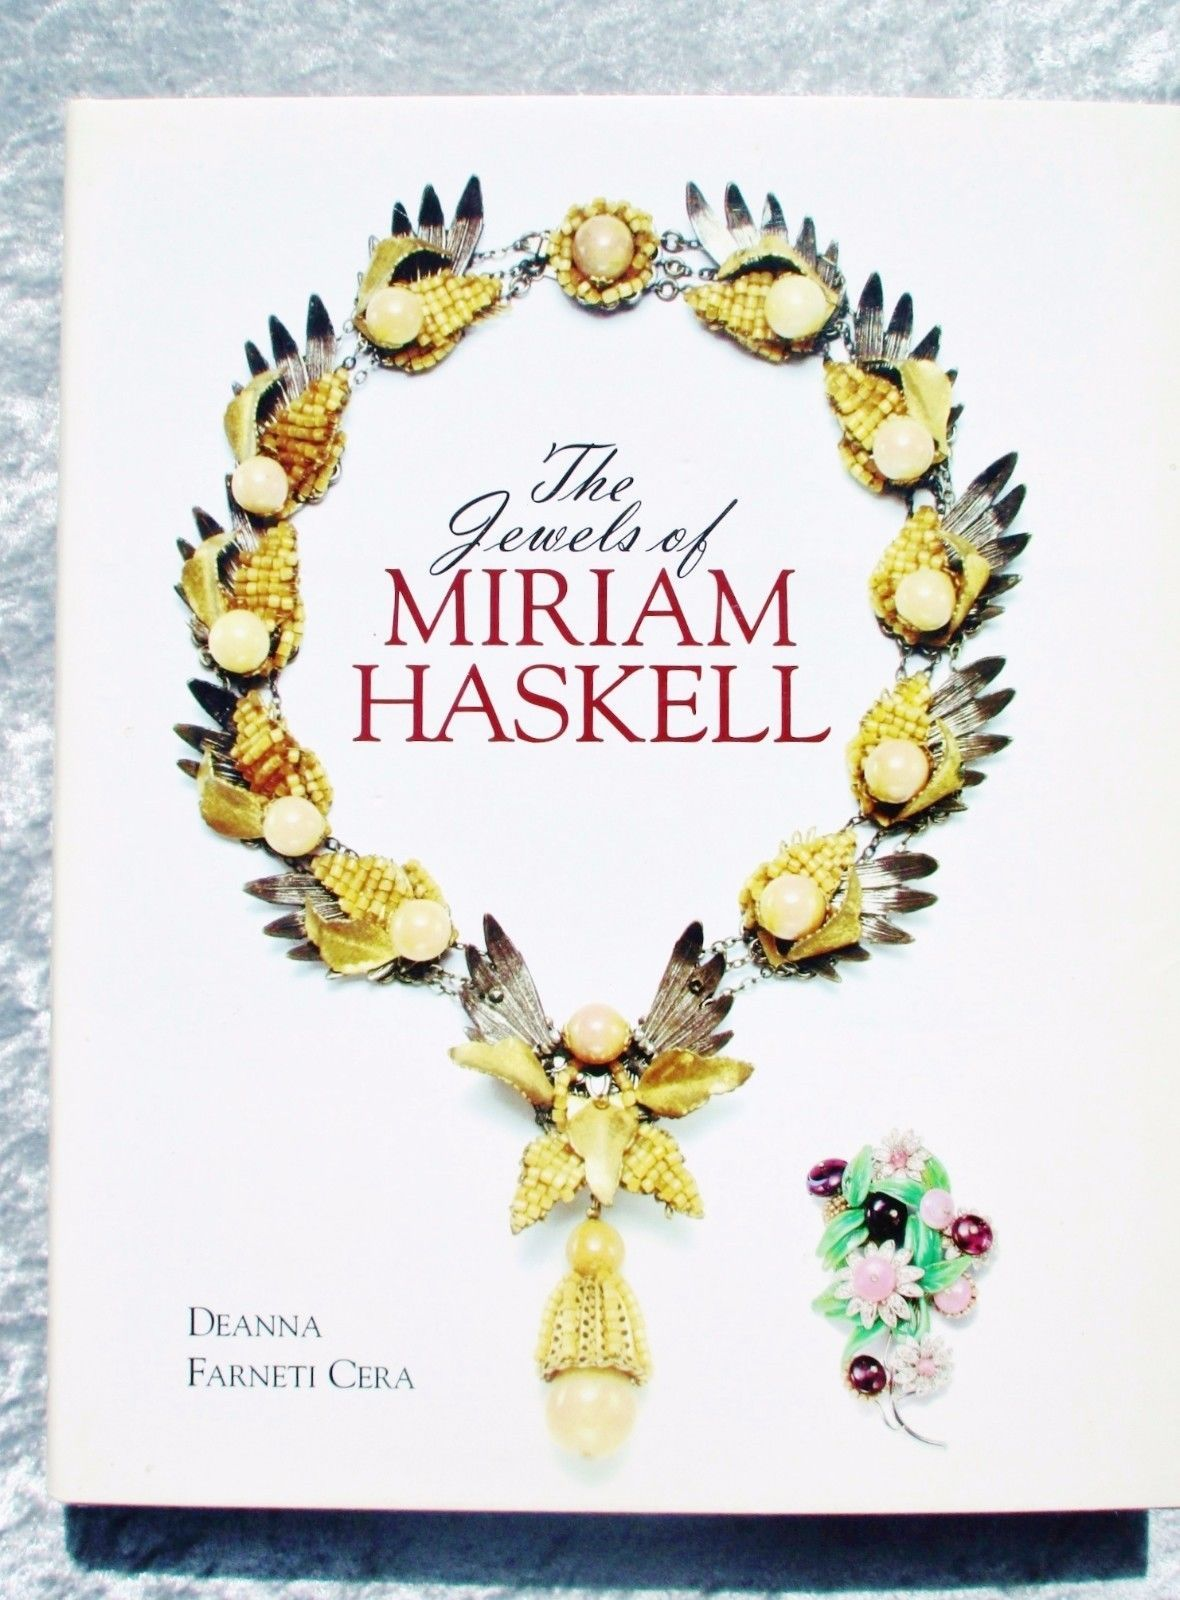 1997 THE JEWELS OF MIRIAM HASKELL w/ 200+ Examples of Her DESIGNER JEWELRY